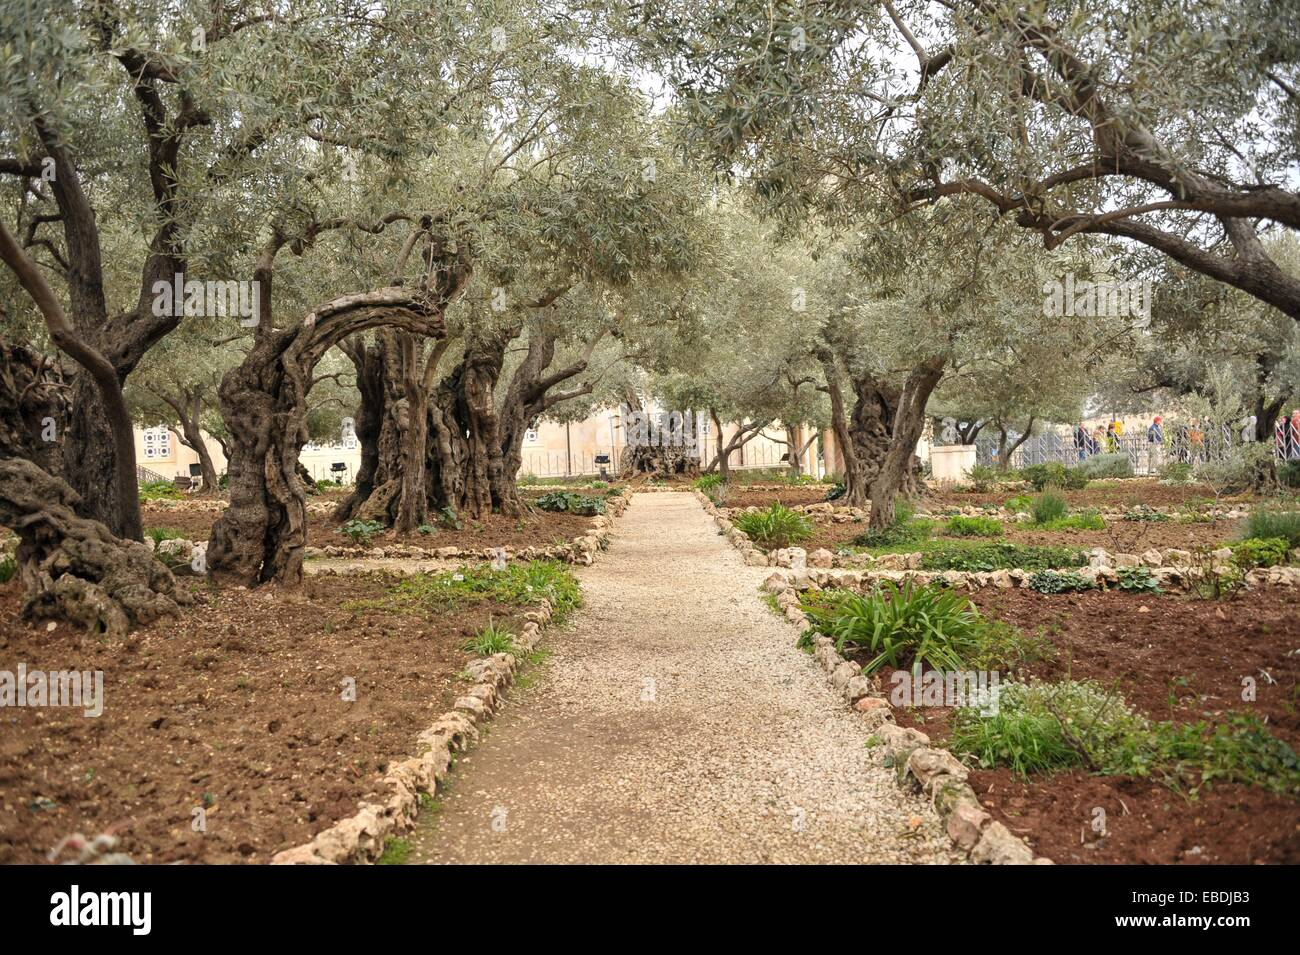 Israel Jerusalem Mount Of Olives Garden Of Gethsemane Stock Photo Alamy